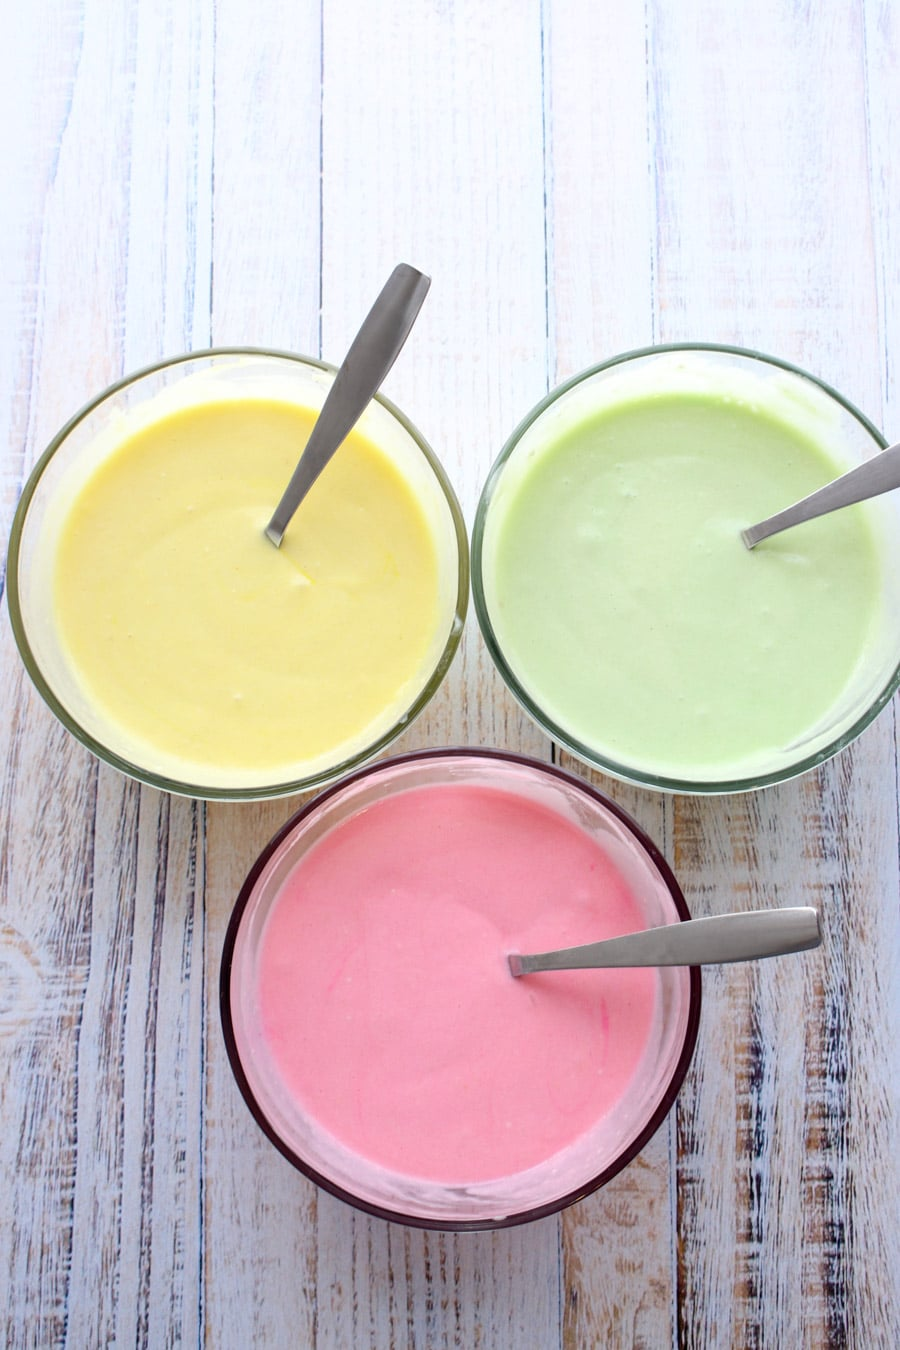 three different colors of cake mix - yellow, green, pink